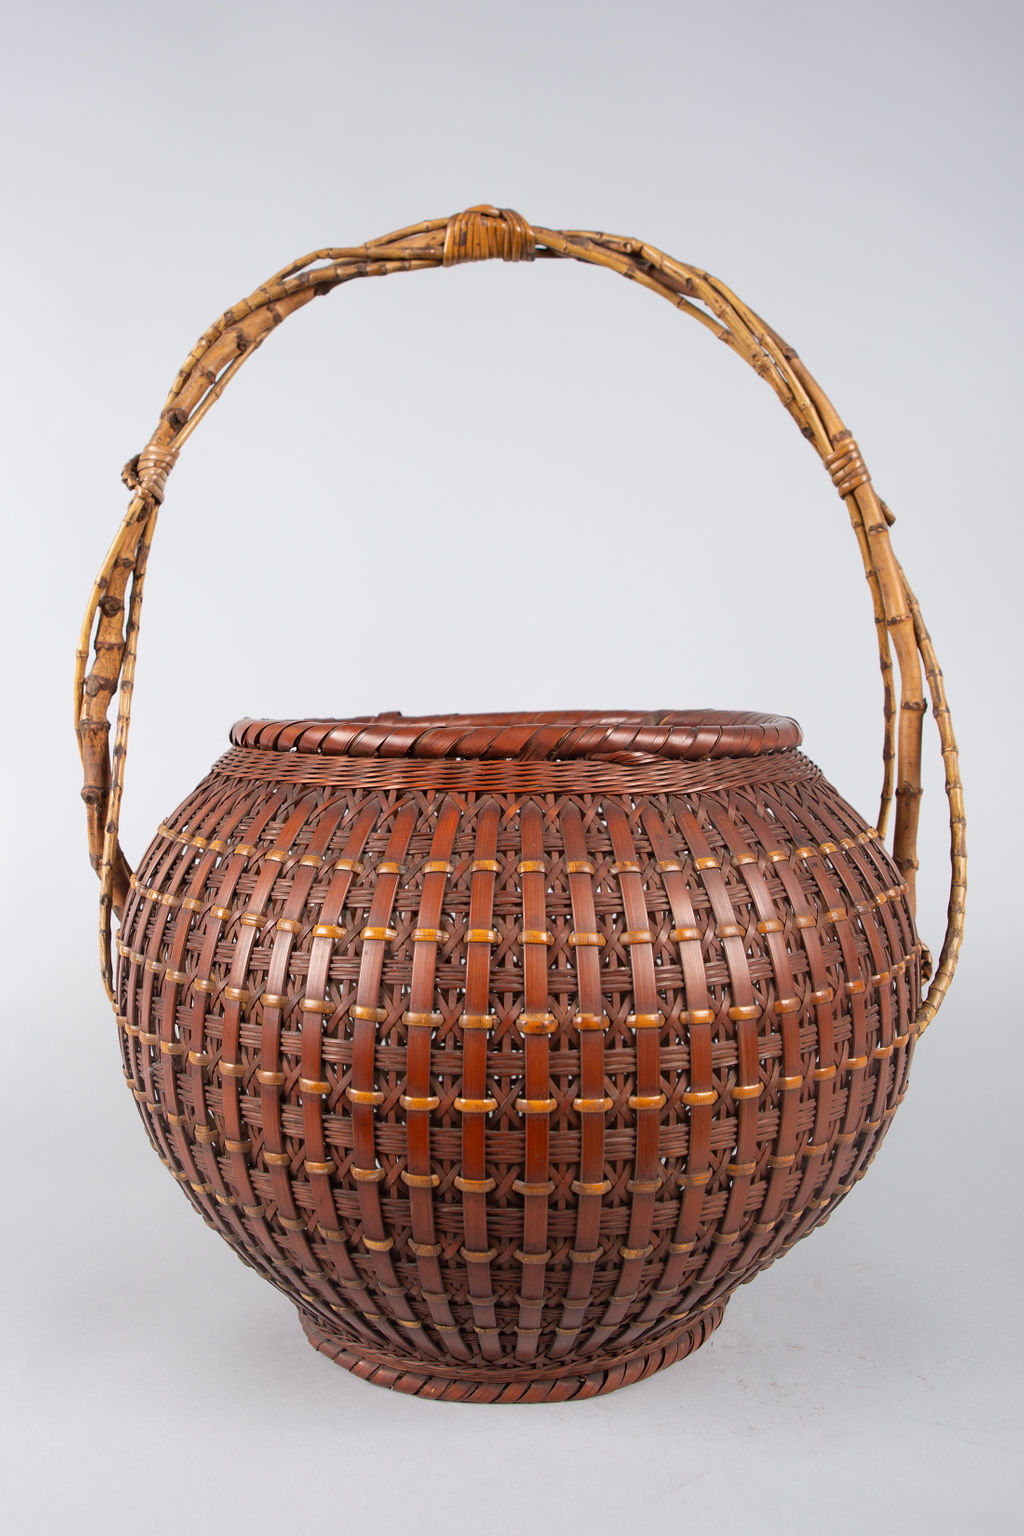 Japanese Ikebana (Flower Arranging Basket) by Teijo Sai